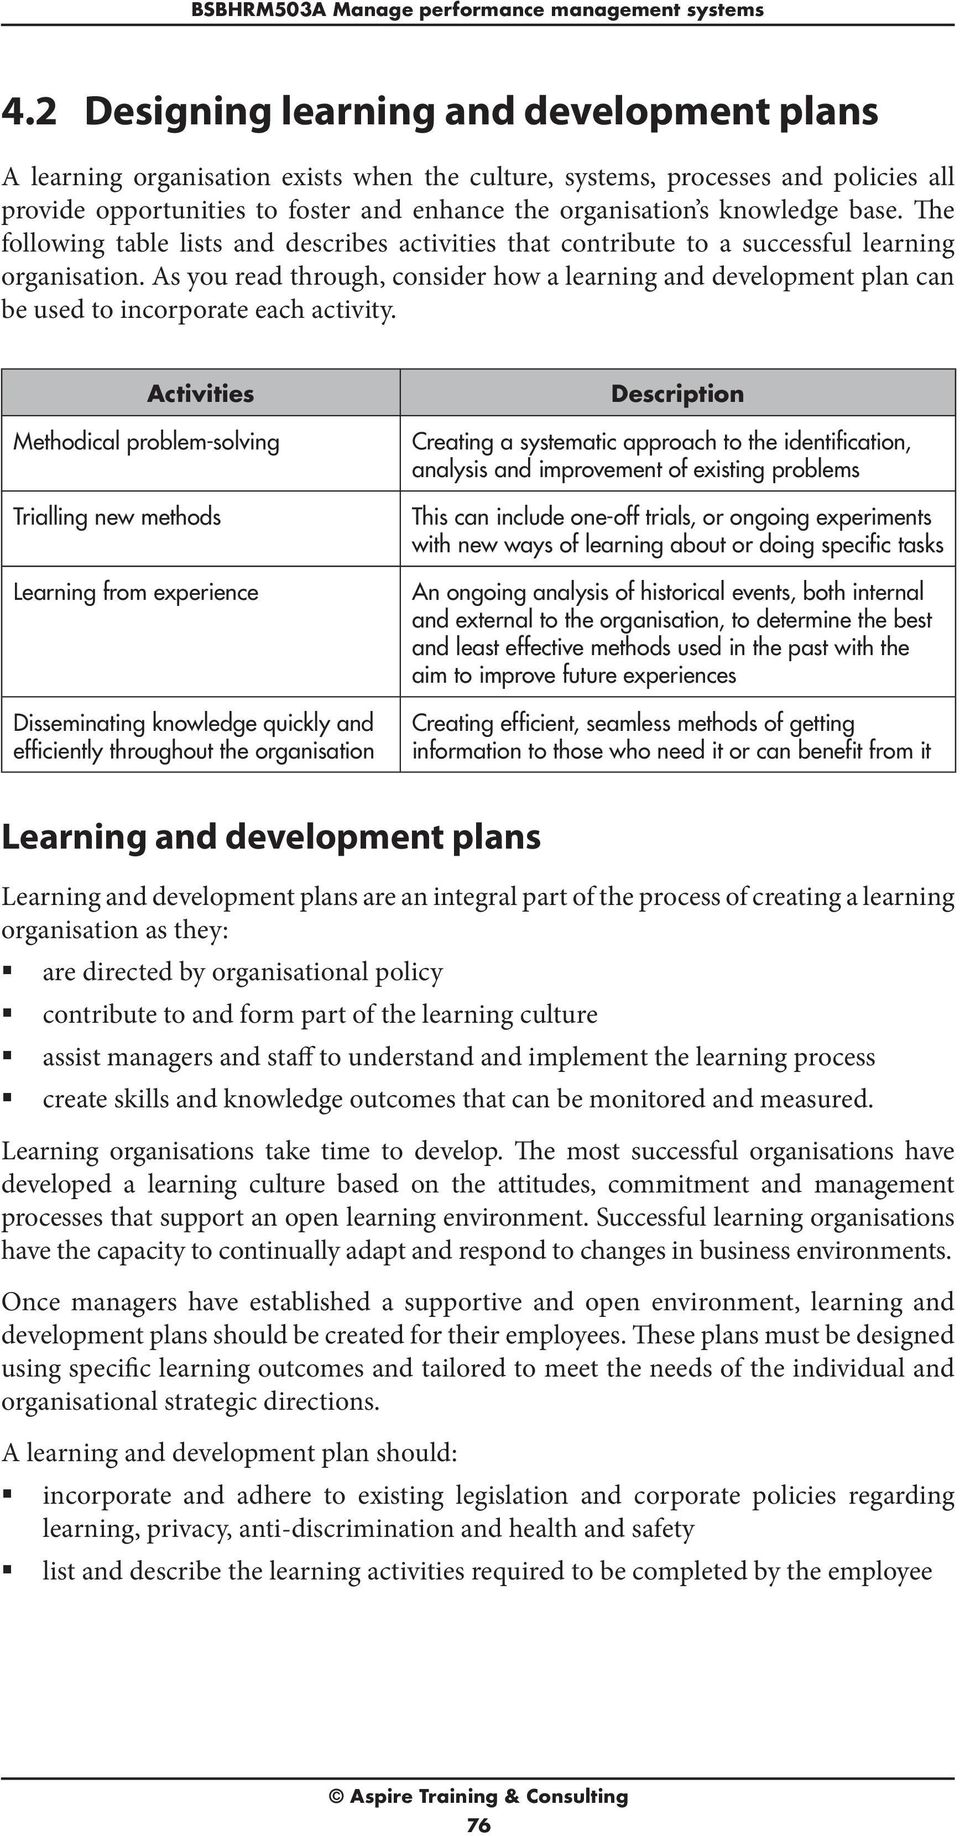 knowledge base. The following table lists and describes activities that contribute to a successful learning organisation.